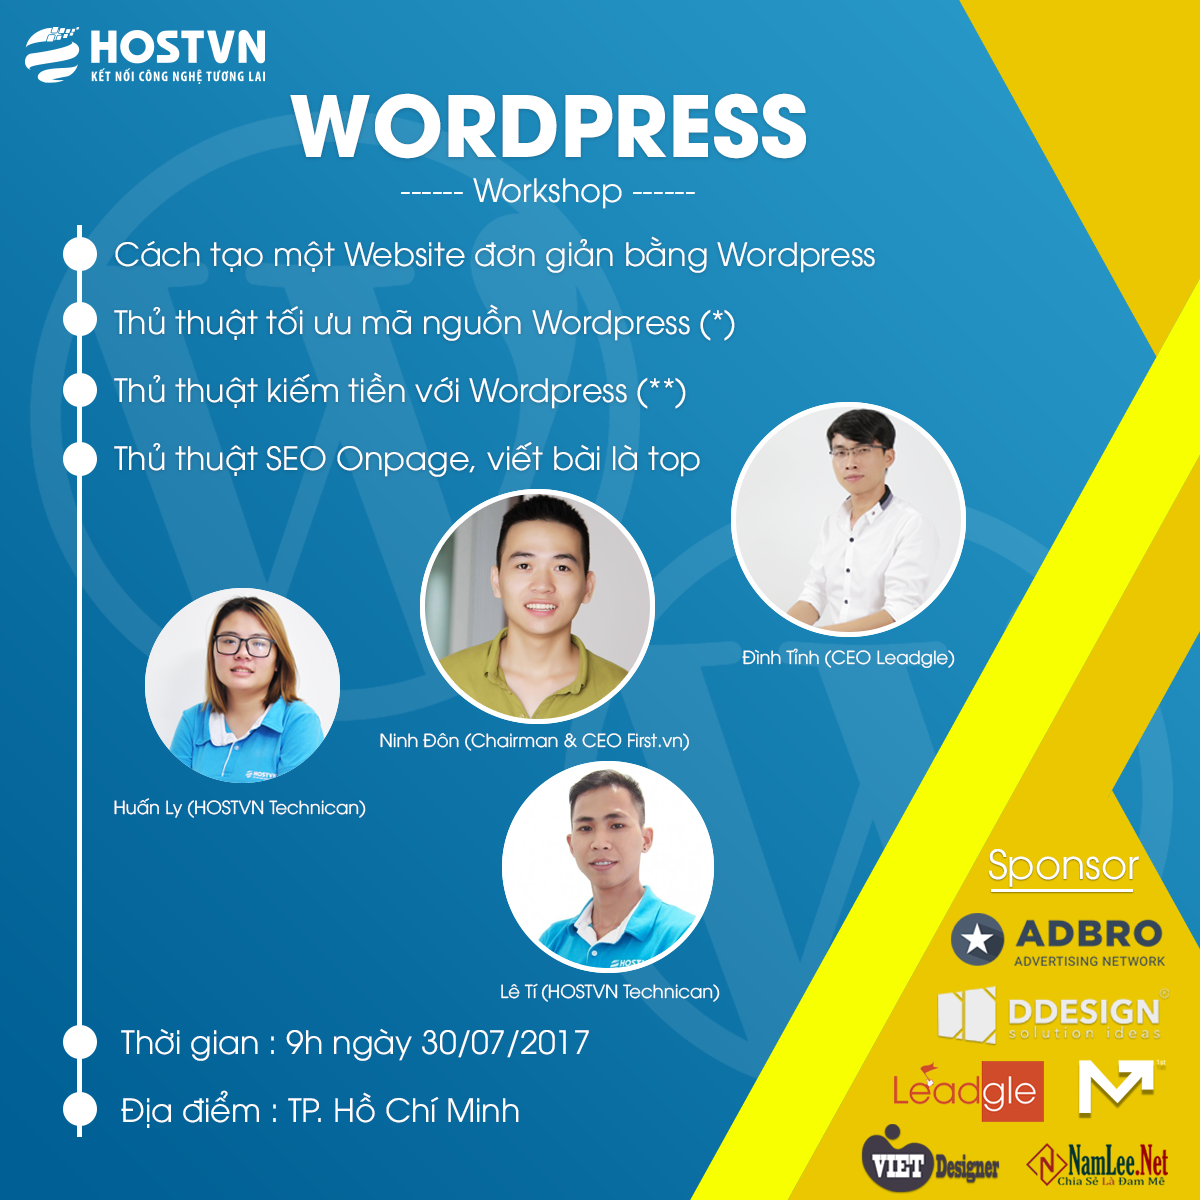 Workshop WordPress 2017